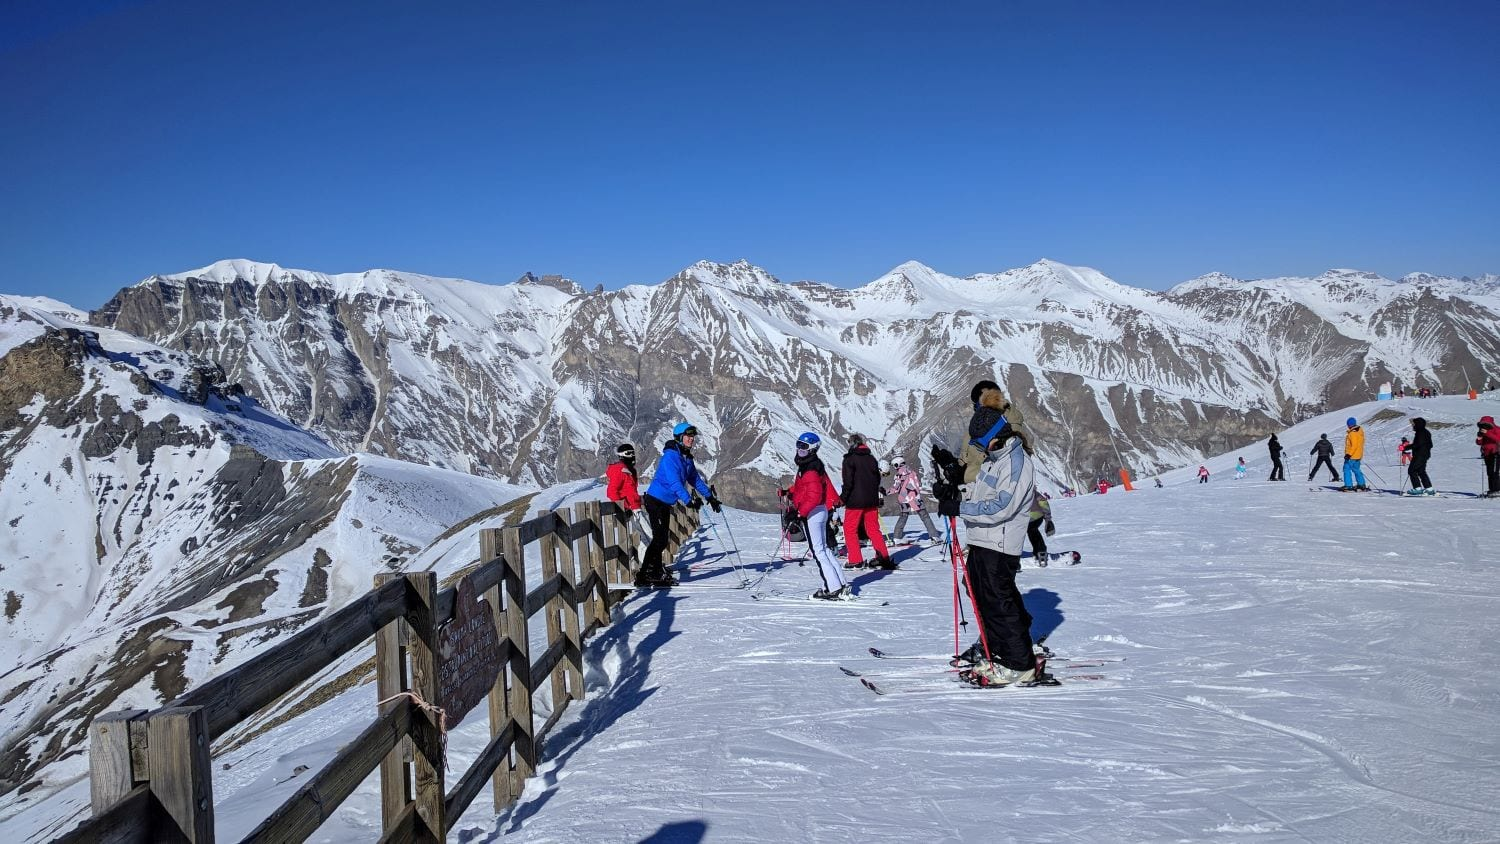 Skiing in Auron, France